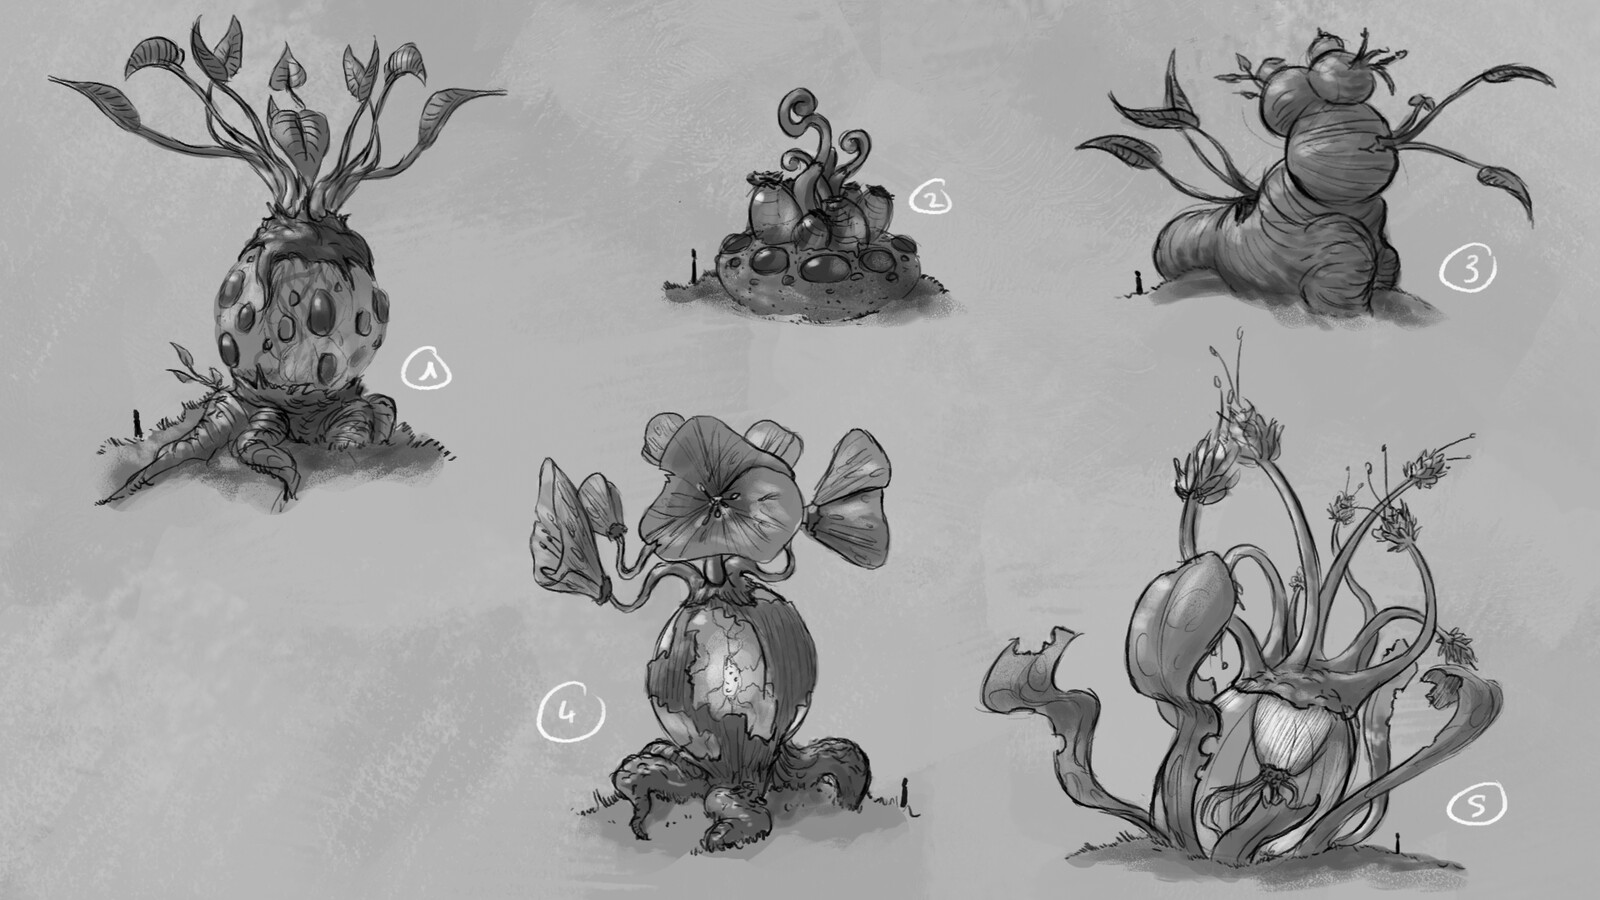 First concepts for Trees. I mixed some of the ideas.